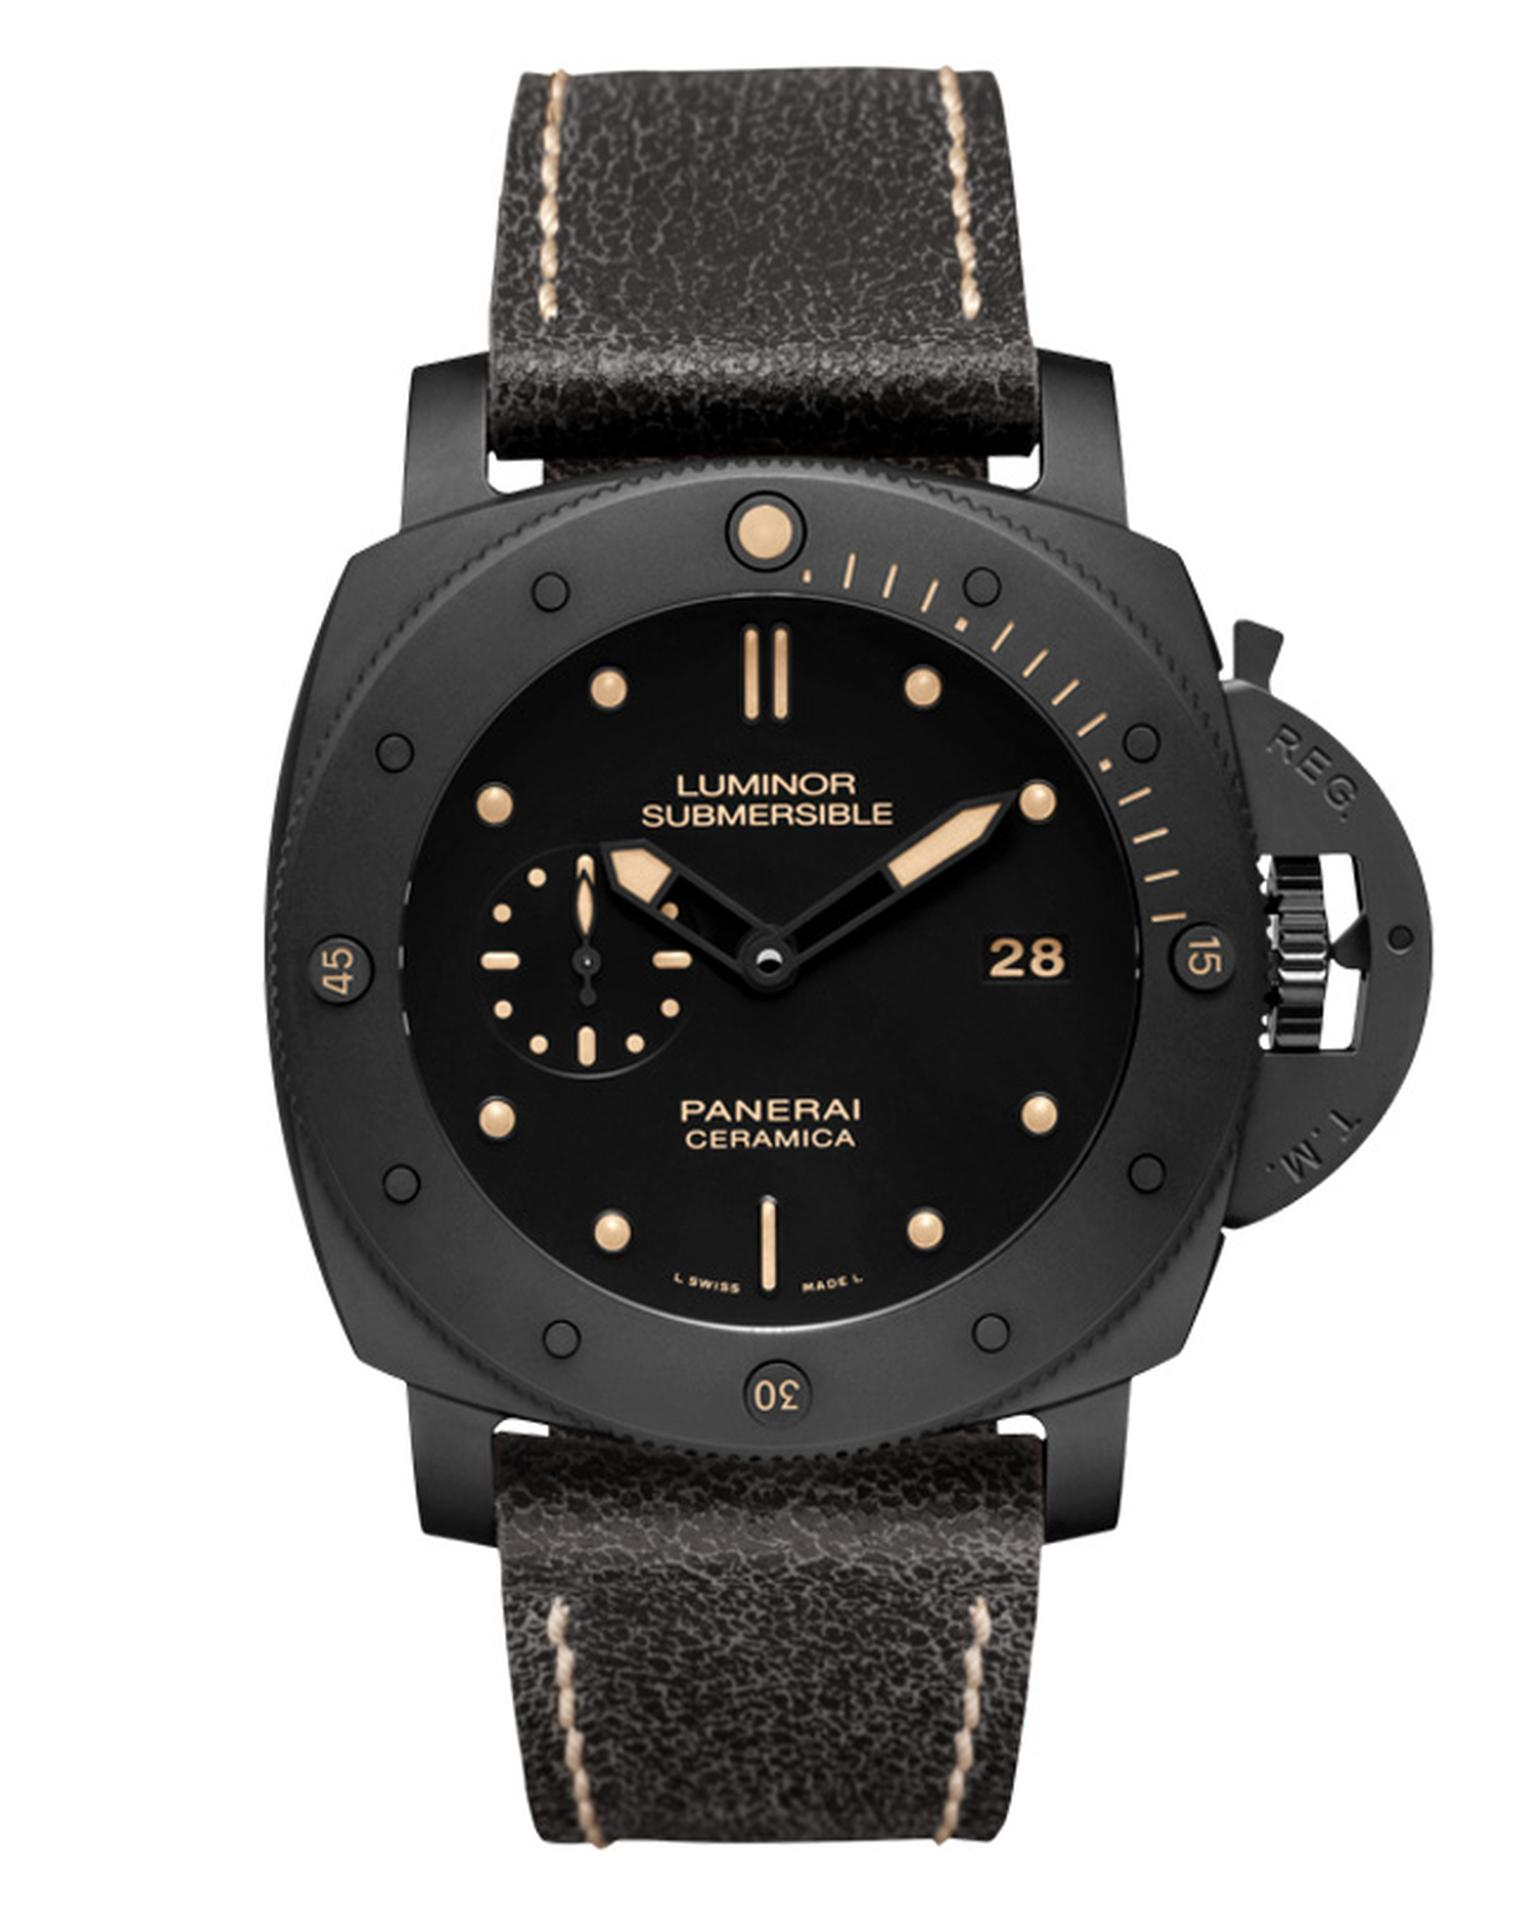 Panerai Luminor Submersible 1950 Ceramica watch_20130404_Main